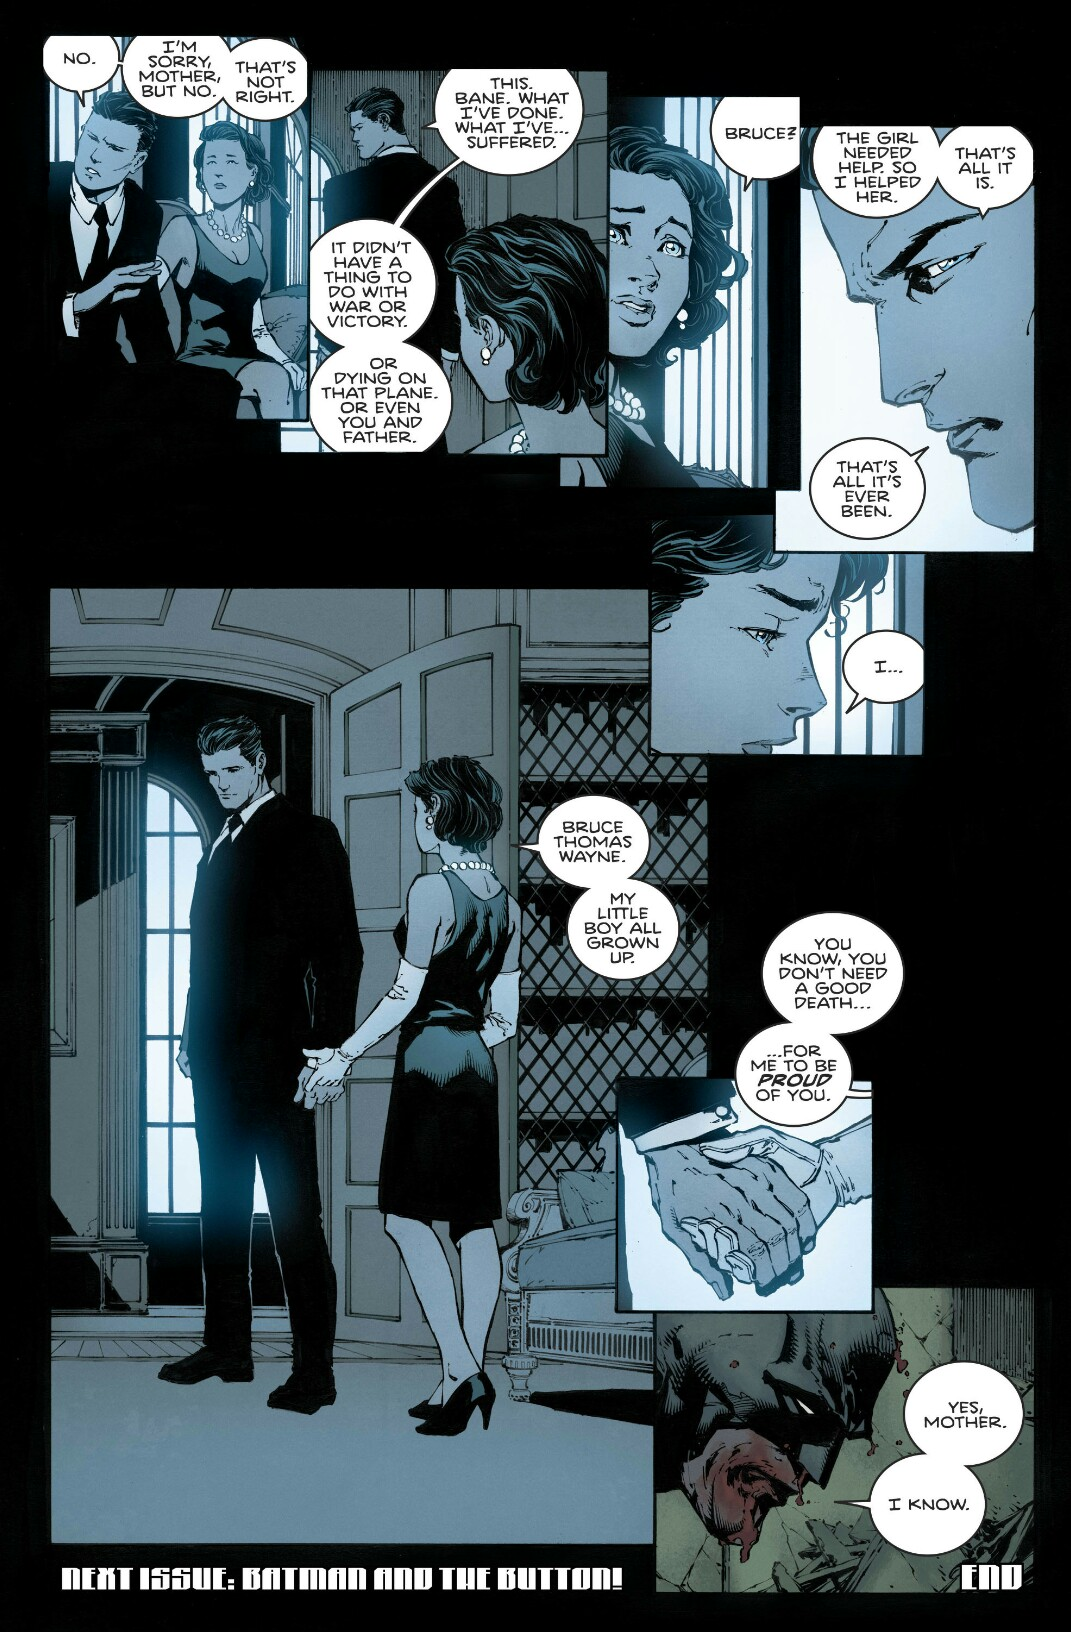 Batman # 20 bruce and martha